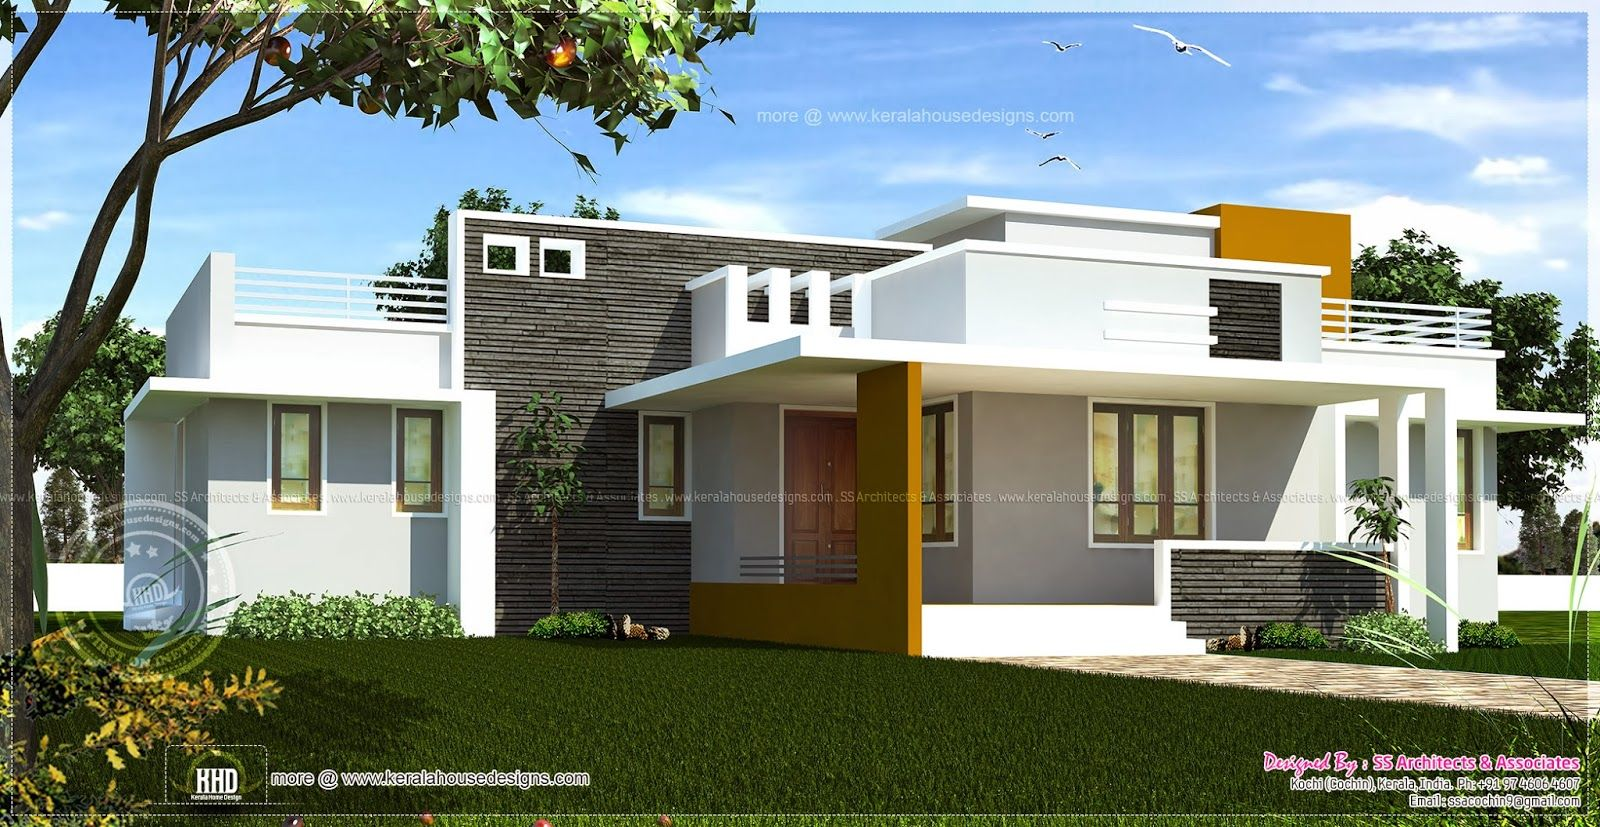 Excellent single home designs single floor contemporary for 1 level house plans